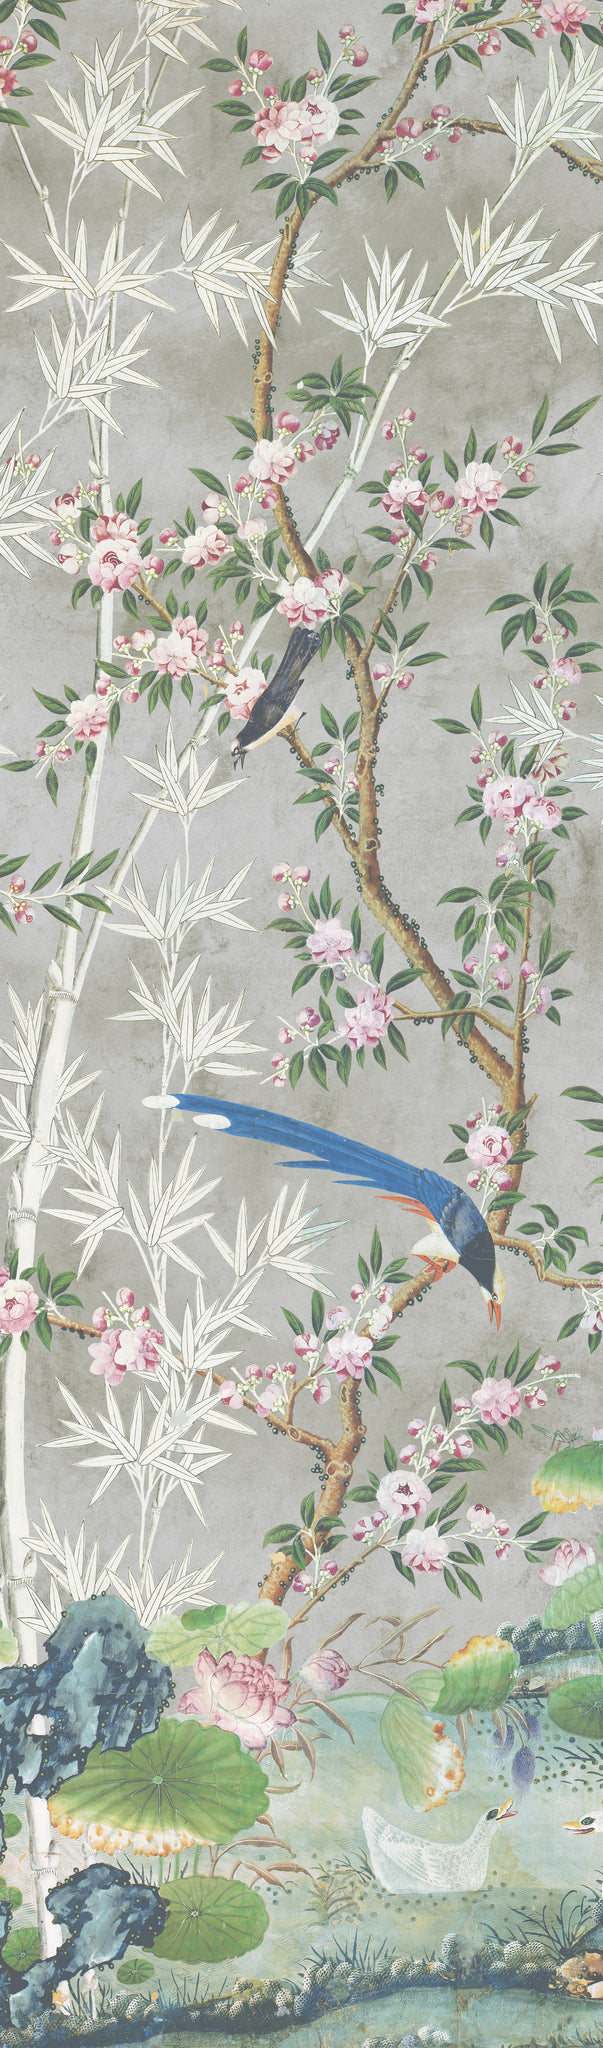 Holly Alderman WALLGAZE Wallpaper Chinoiserie Garden Hamlen Collection gray background